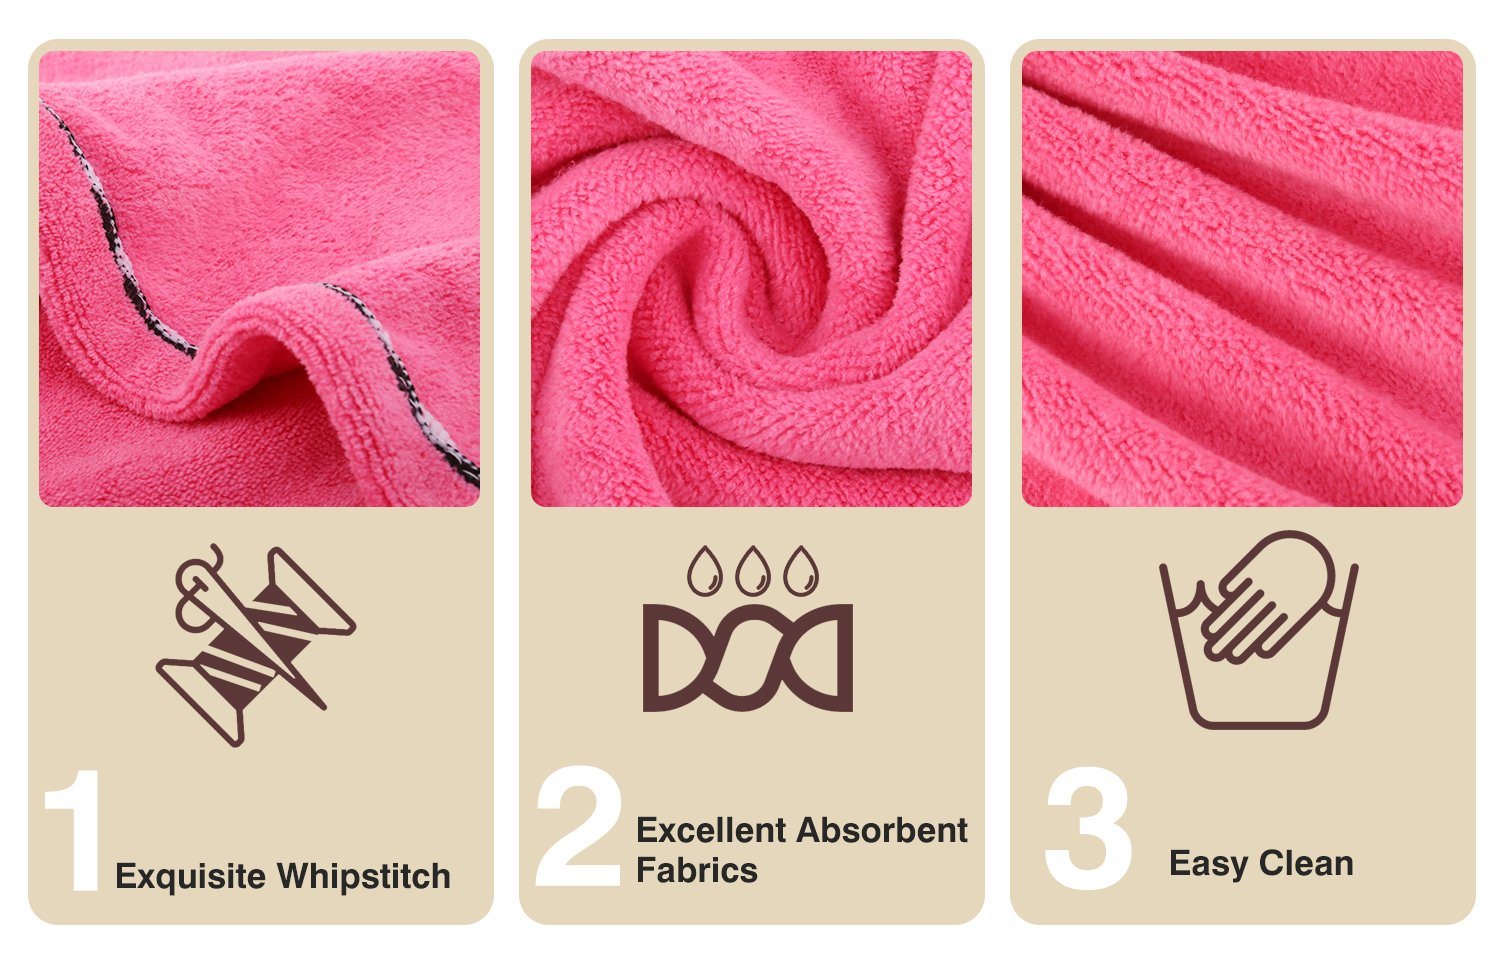 Luxspire 2 Pack Microfiber Hair Drying Towels, Fast Drying Hair Cap, Long Hair Wrap Turban, Bath Shower Head Towel with Buttons, Super Water-absorbent, Blue & Rose Red by Luxspire (Image #4)